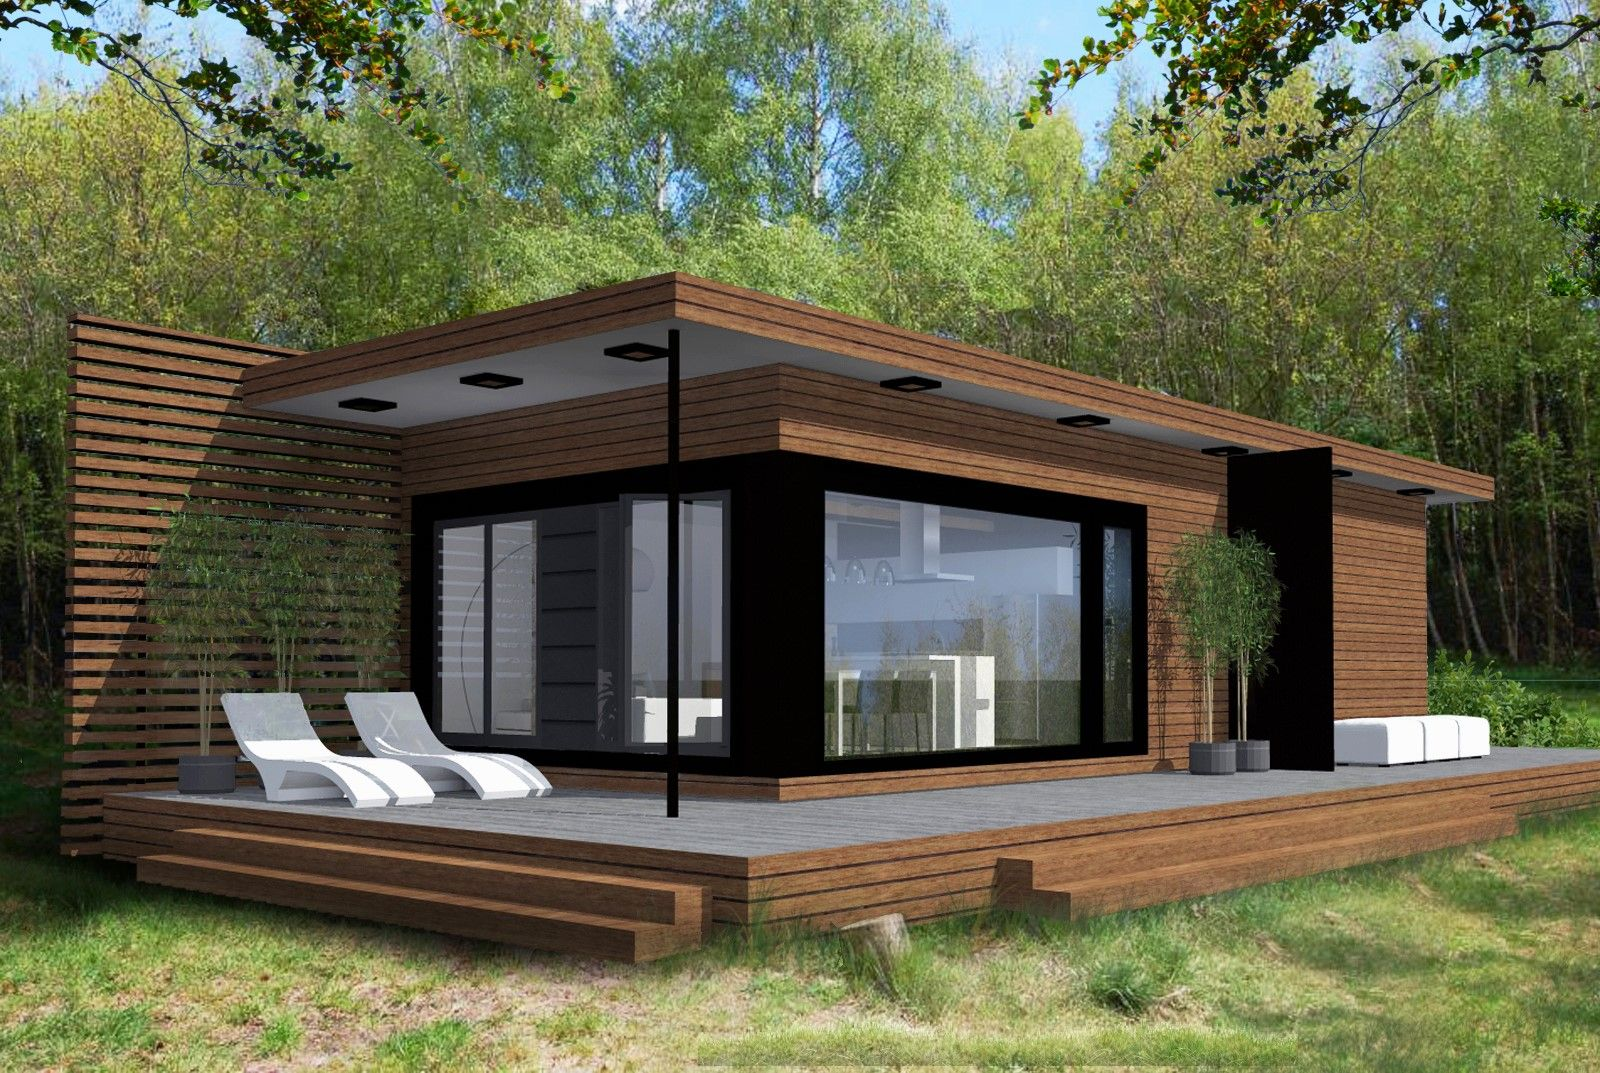 Container House - Container House - Modern shipping ...